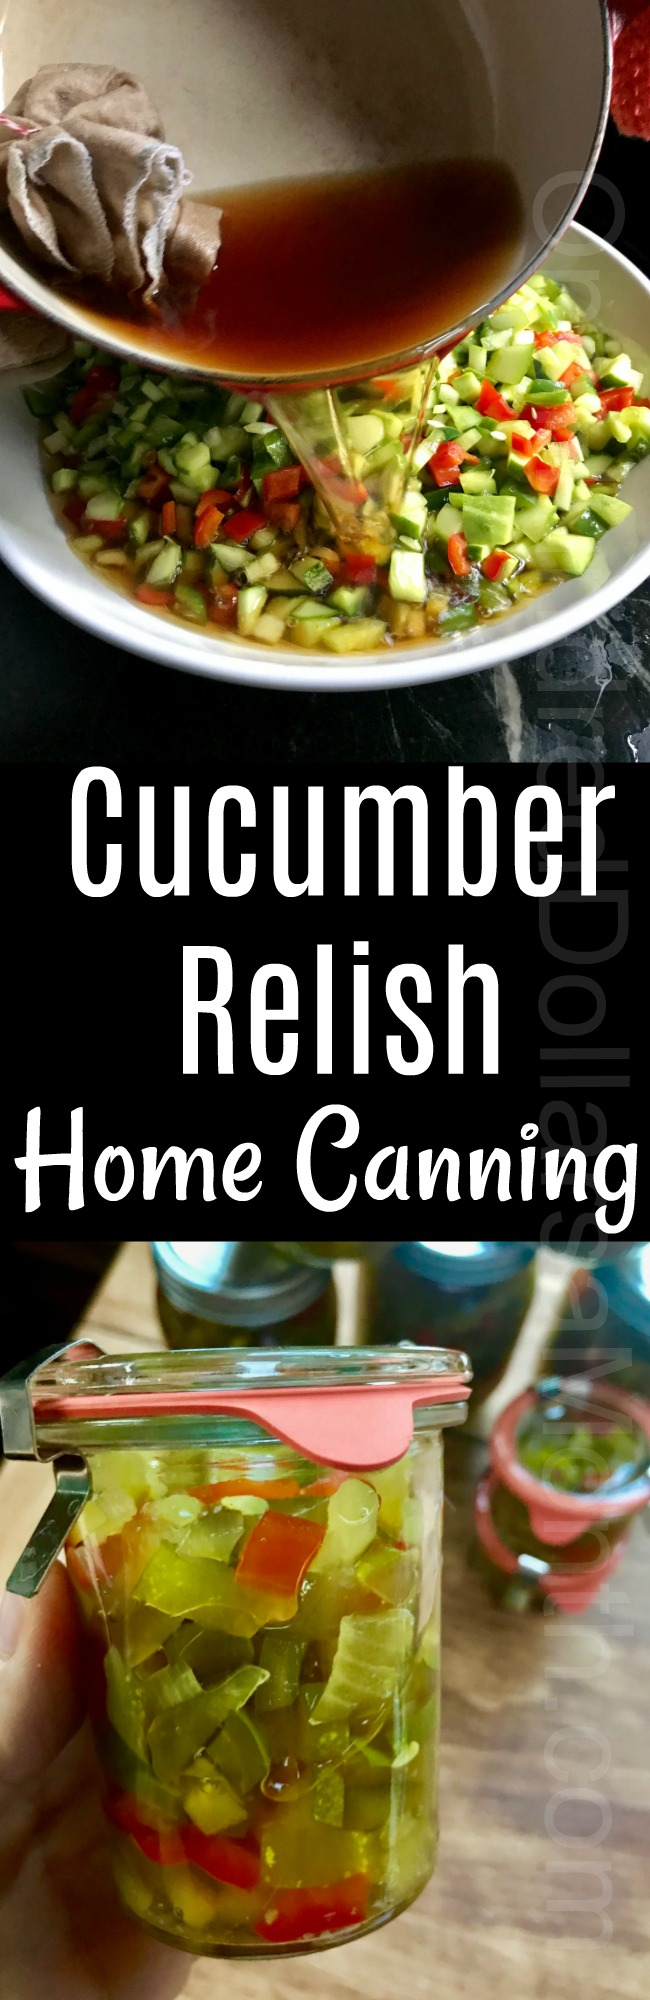 Home Canning Recipe – Cucumber Relish